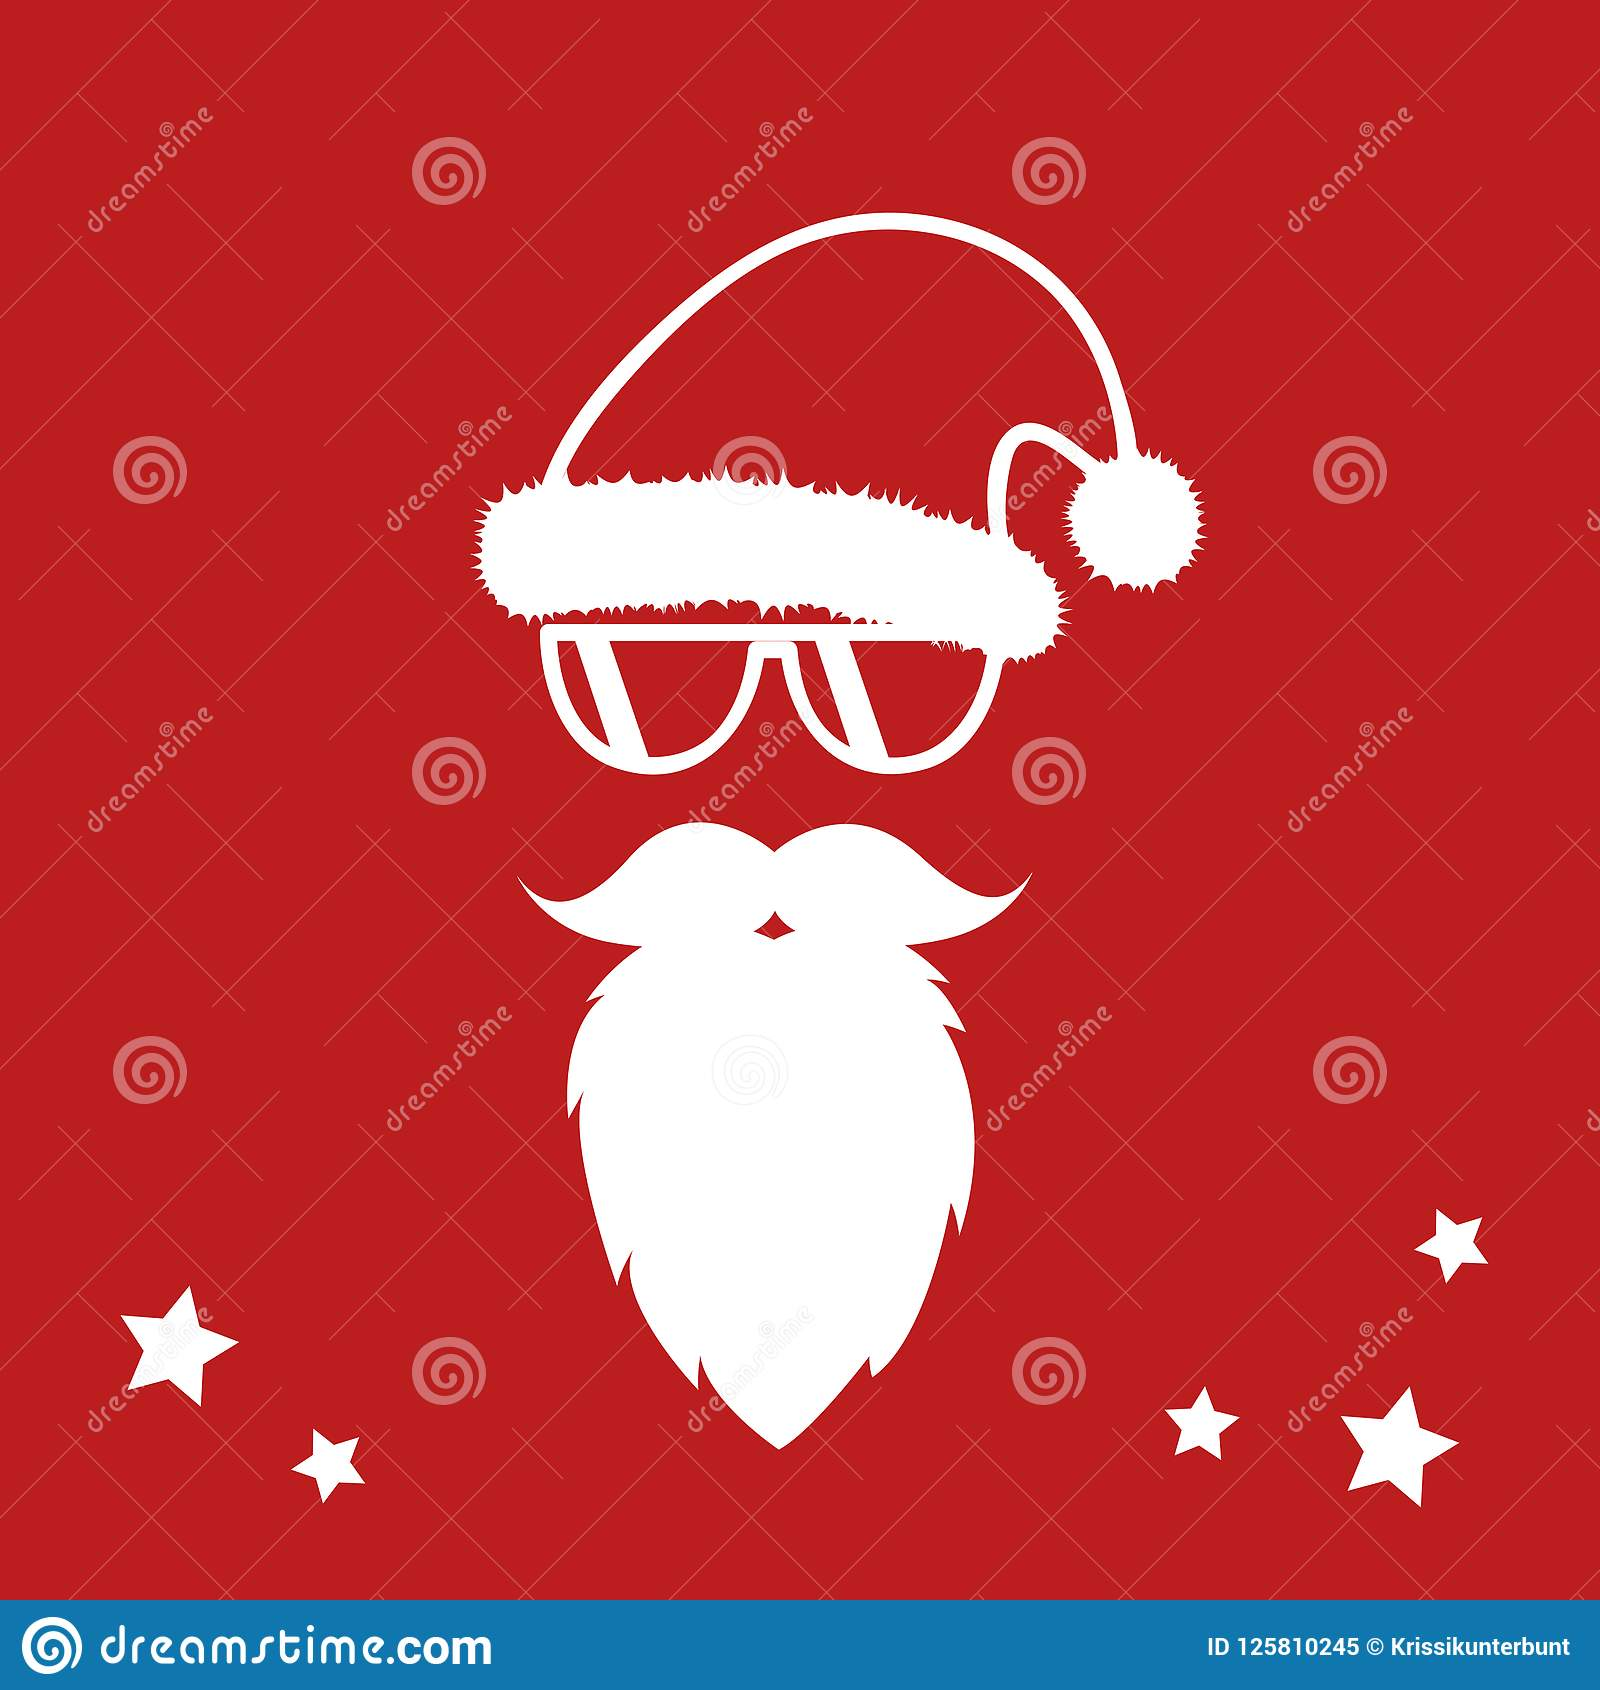 Hipster Santa Claus With Cool Beard And Sunglasses Merry Christmas ...